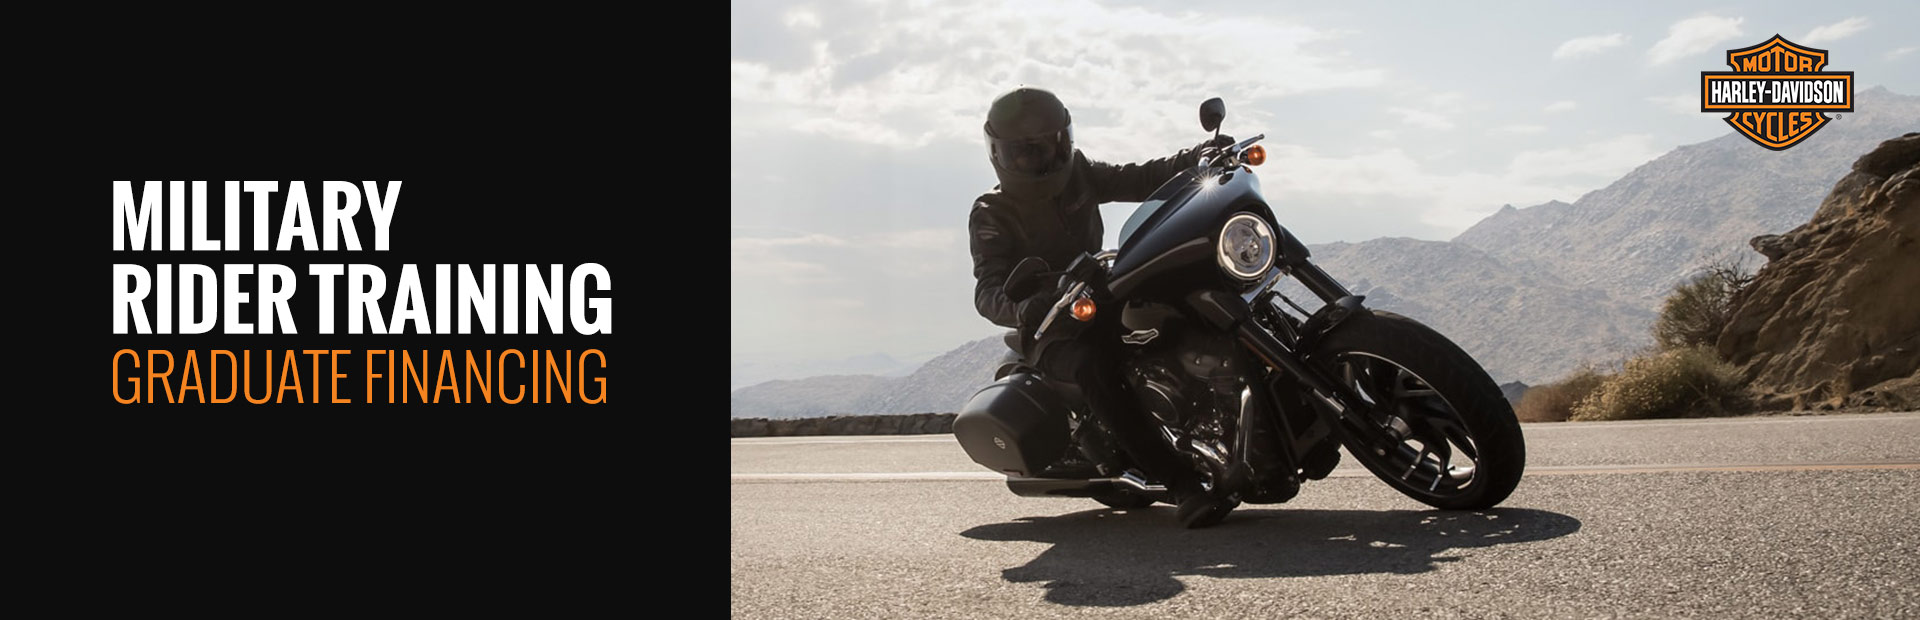 Harley-Davidson®: Military Rider Training Graduate Financing